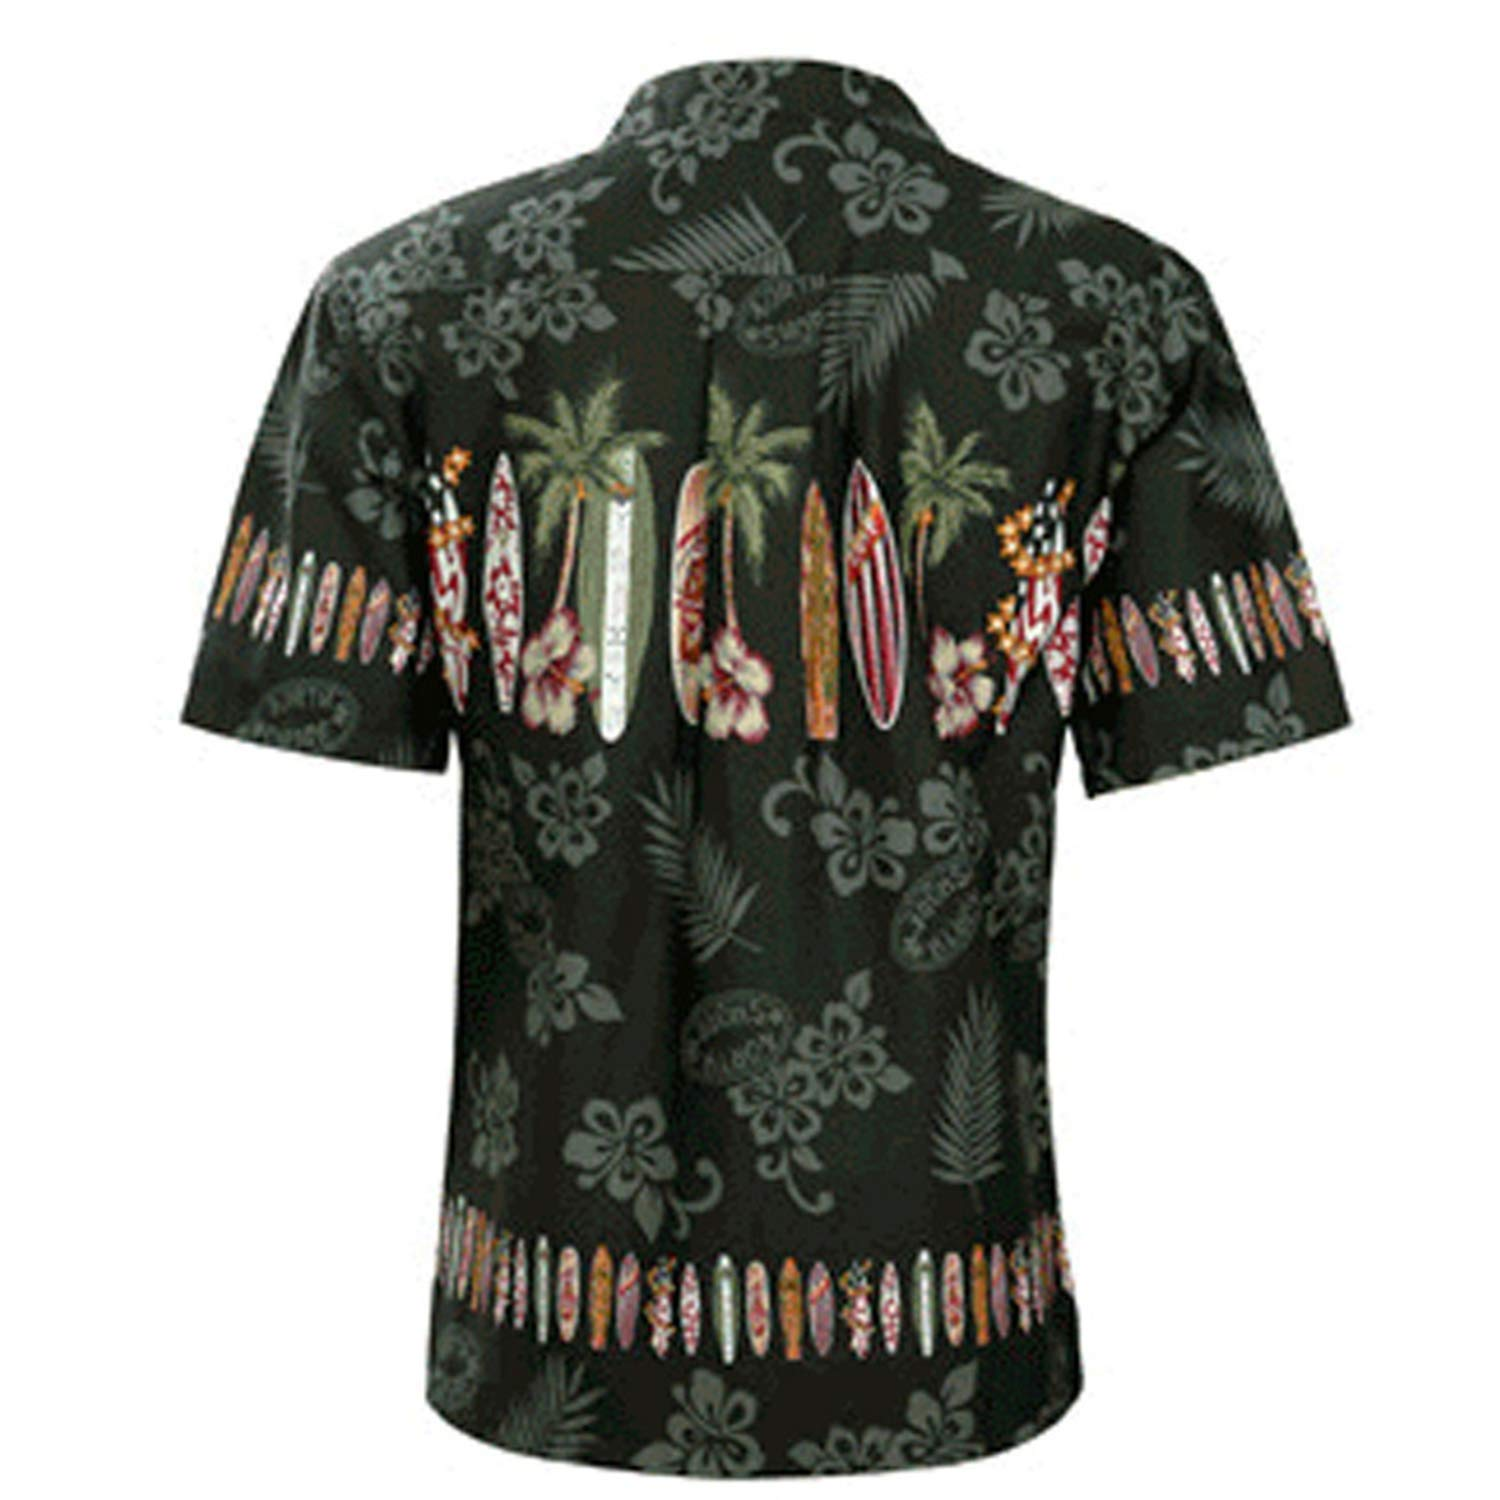 Fashion Shirt Dress Tropical Hawaiian Tops Chic Summer Mens Shirts Printed Floral Short Sleeve Lapel Loose Button Red-XXXL